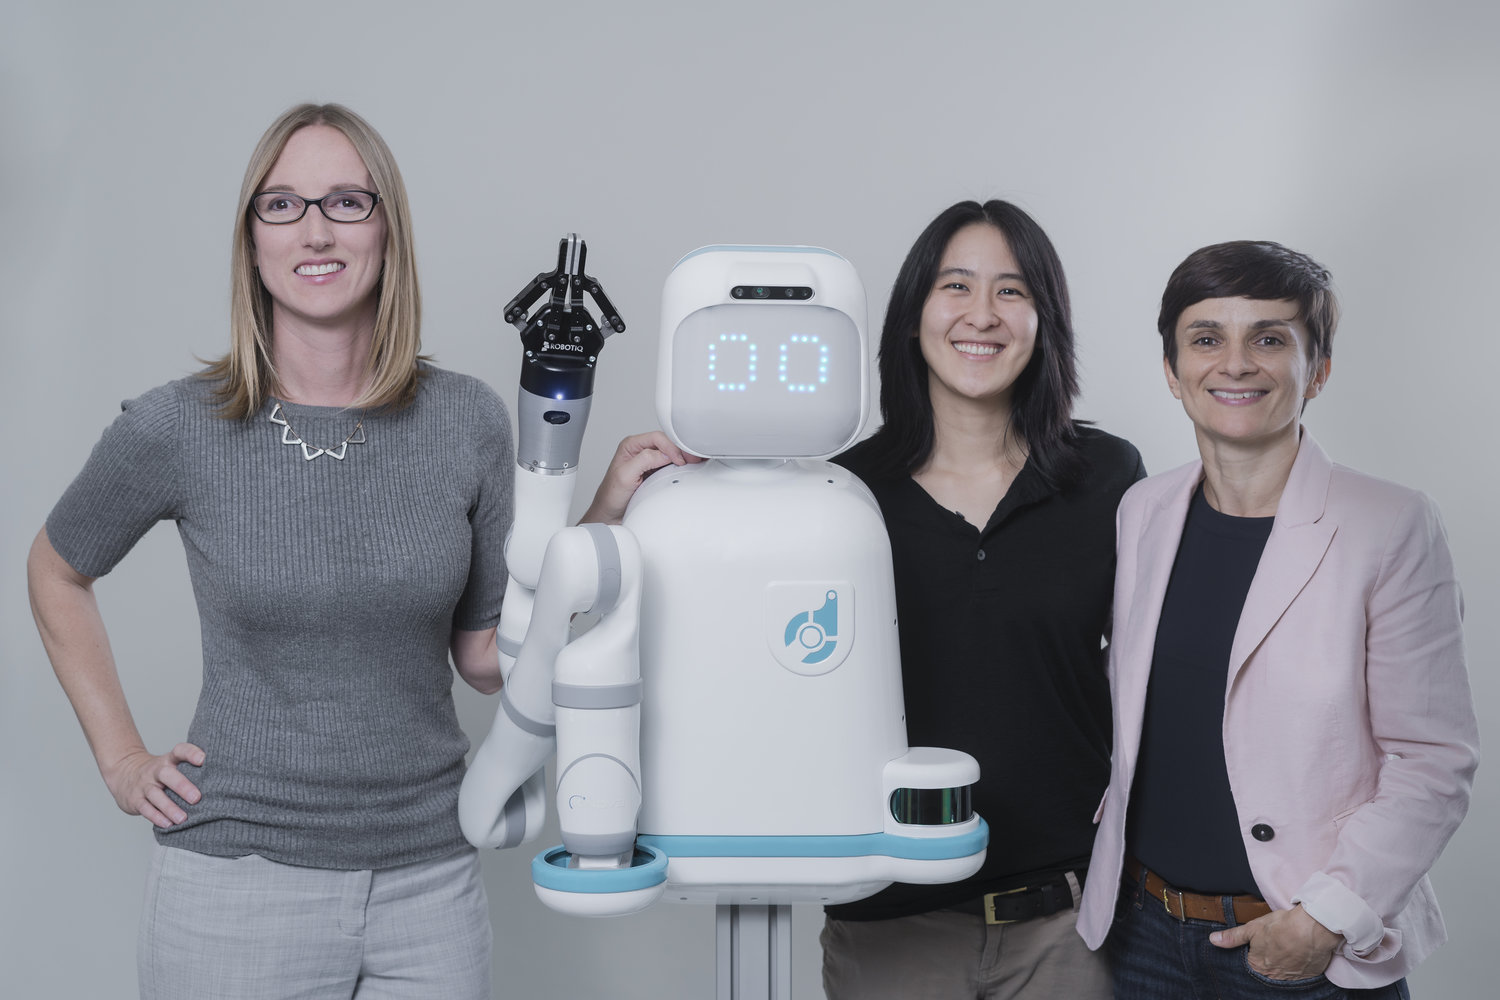 Press Release - April 9, 2019 - Diligent Robotics Receives Honorable Mention in Fast Company's 2019 World Changing Ideas Awards